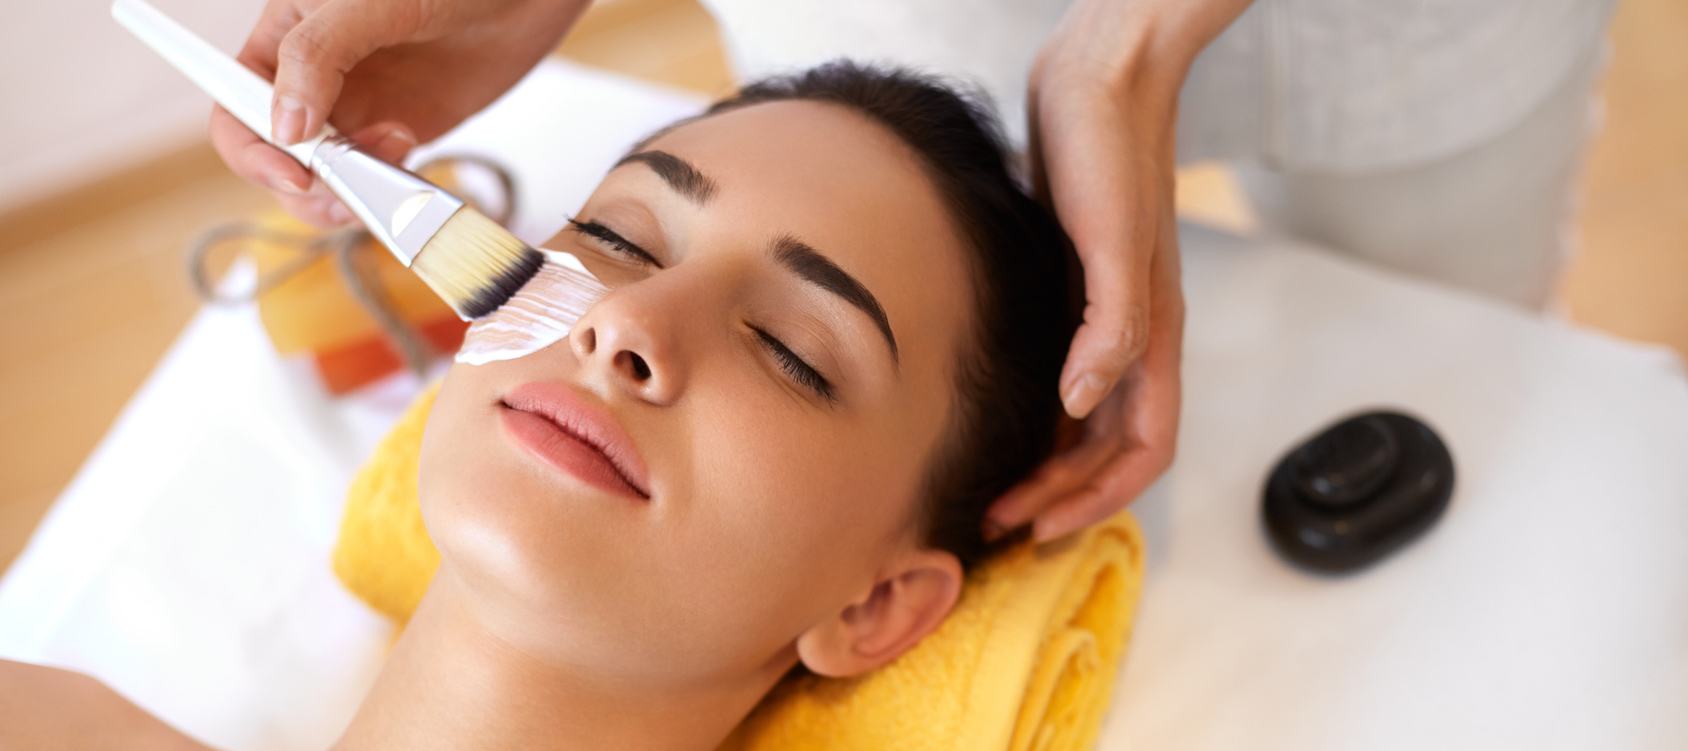 Day spa skin care services